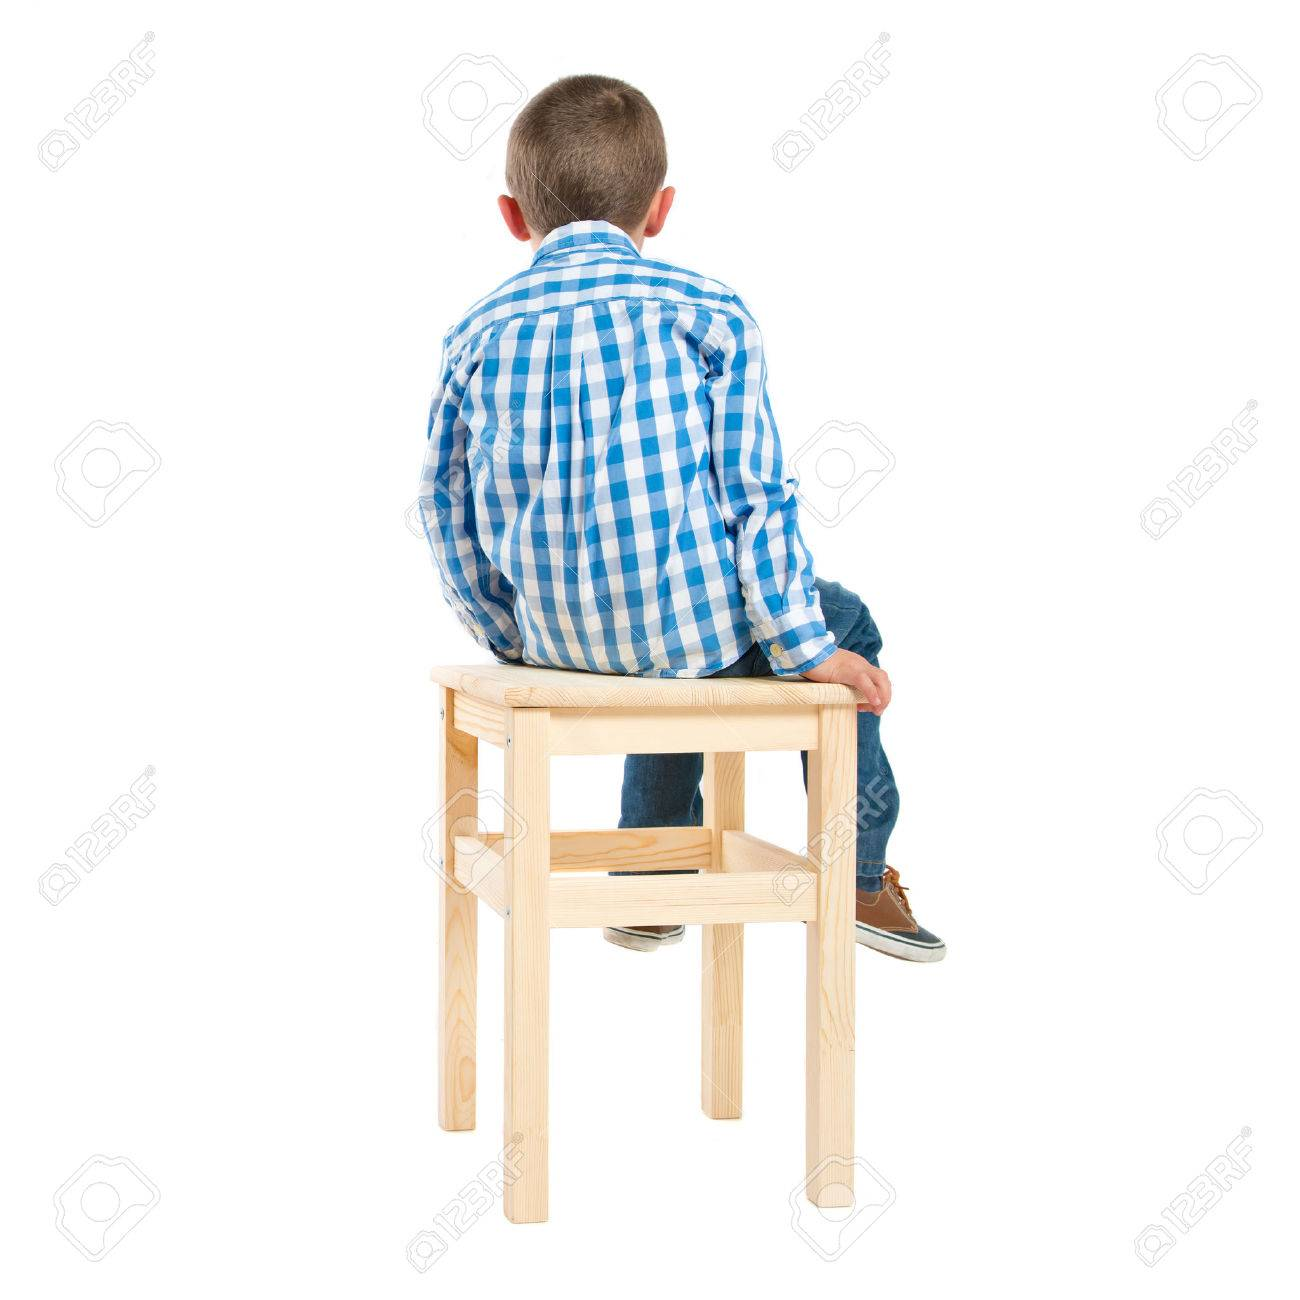 back kid on wooden chair over white background - 29891749